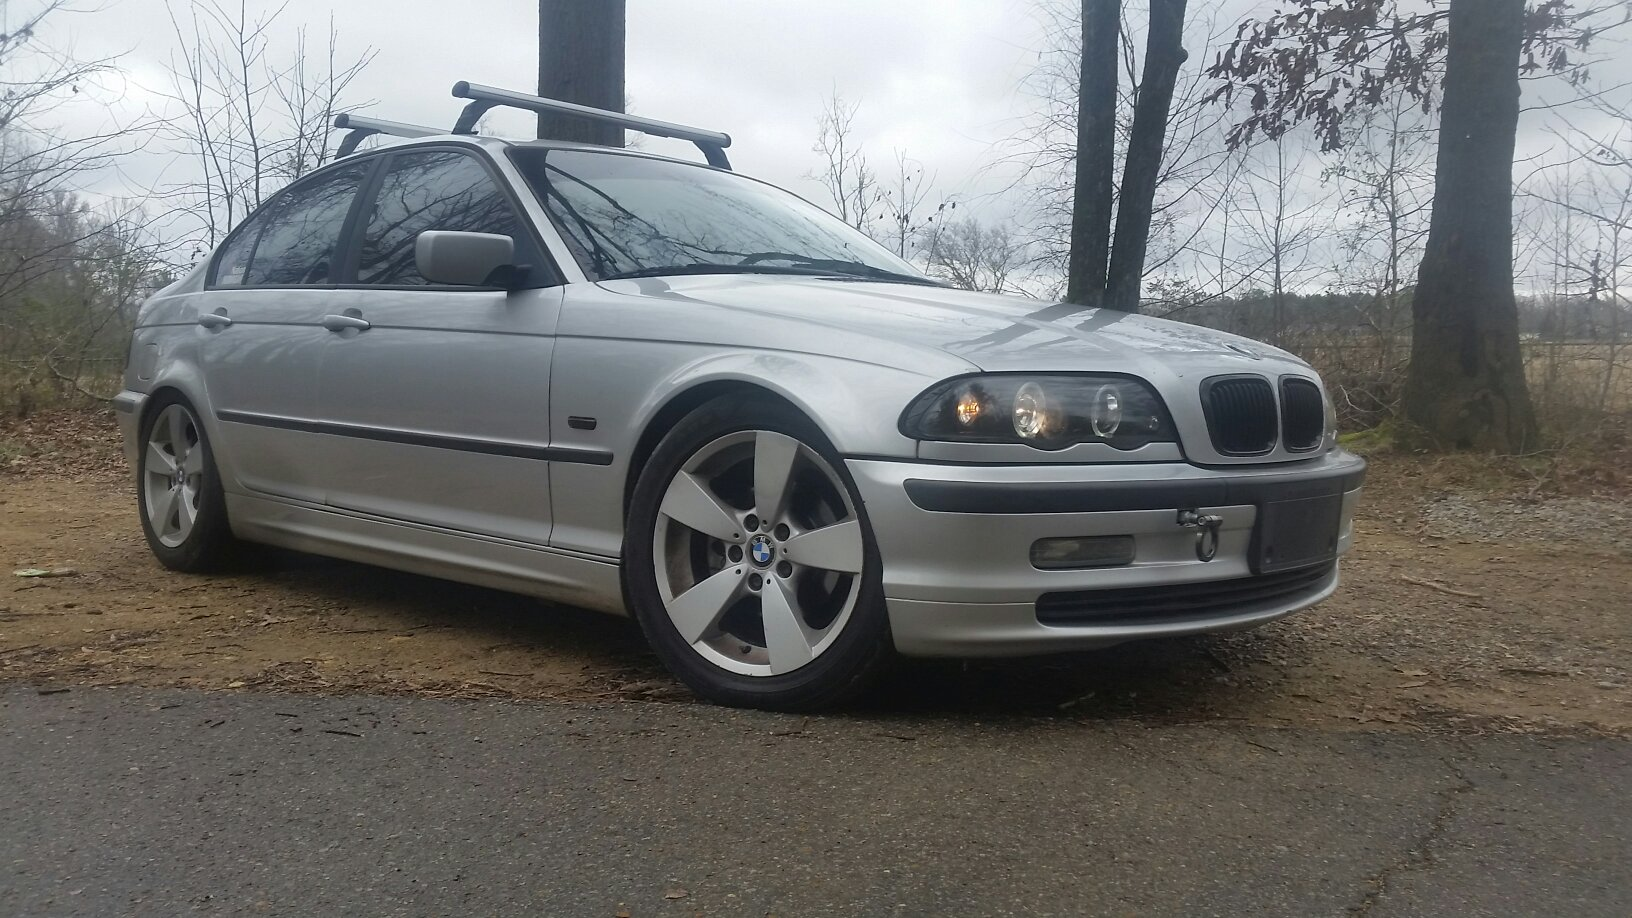 What Do You Guys Thing Of These E60 Wheels On My E46